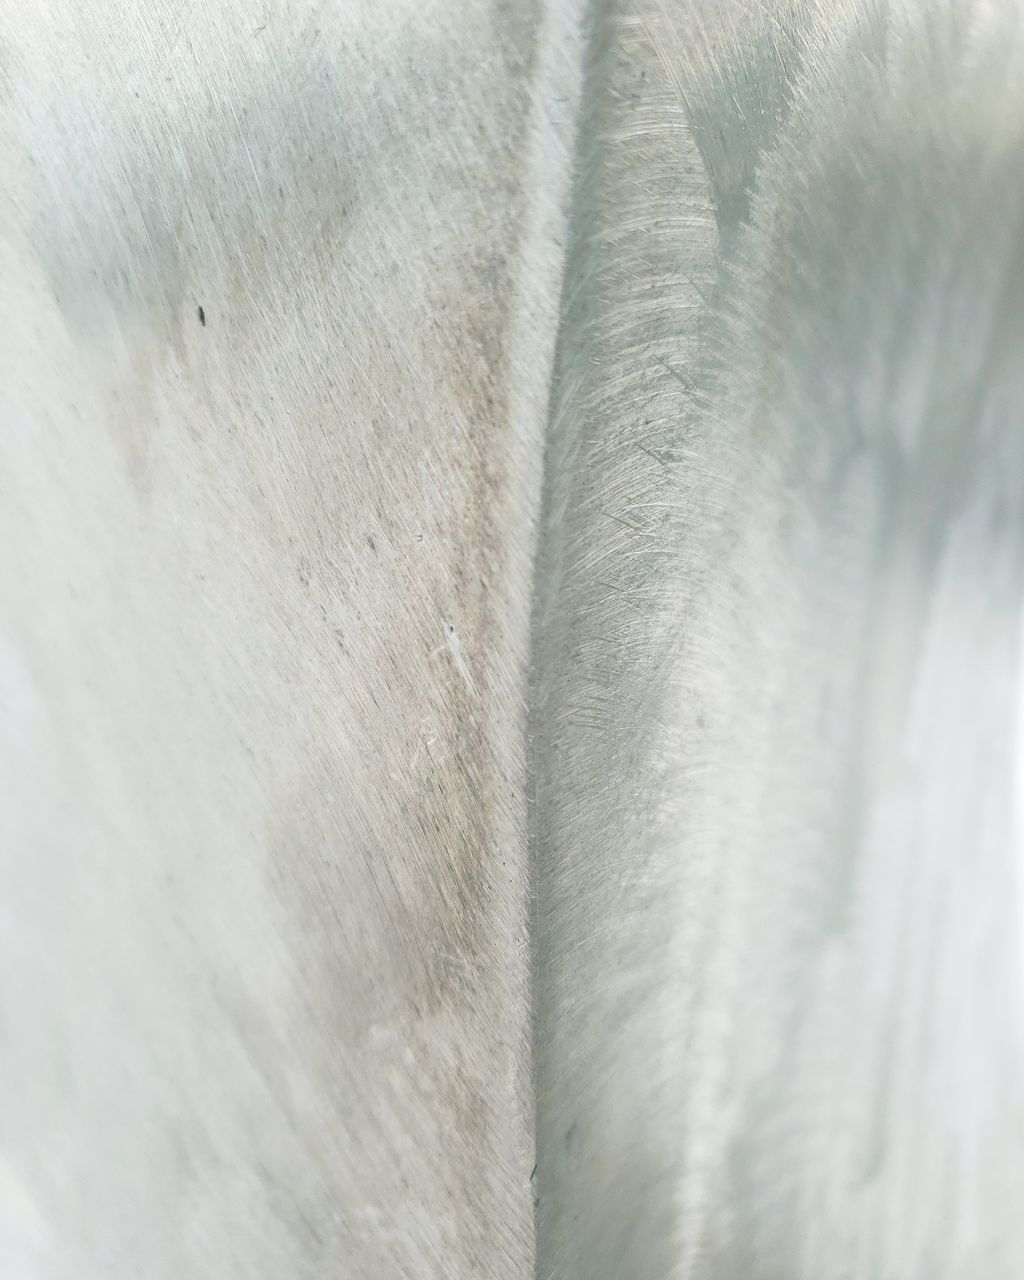 backgrounds, full frame, close-up, no people, white color, pattern, textured, softness, selective focus, textile, indoors, day, still life, gray, nature, feather, extreme close-up, white, detail